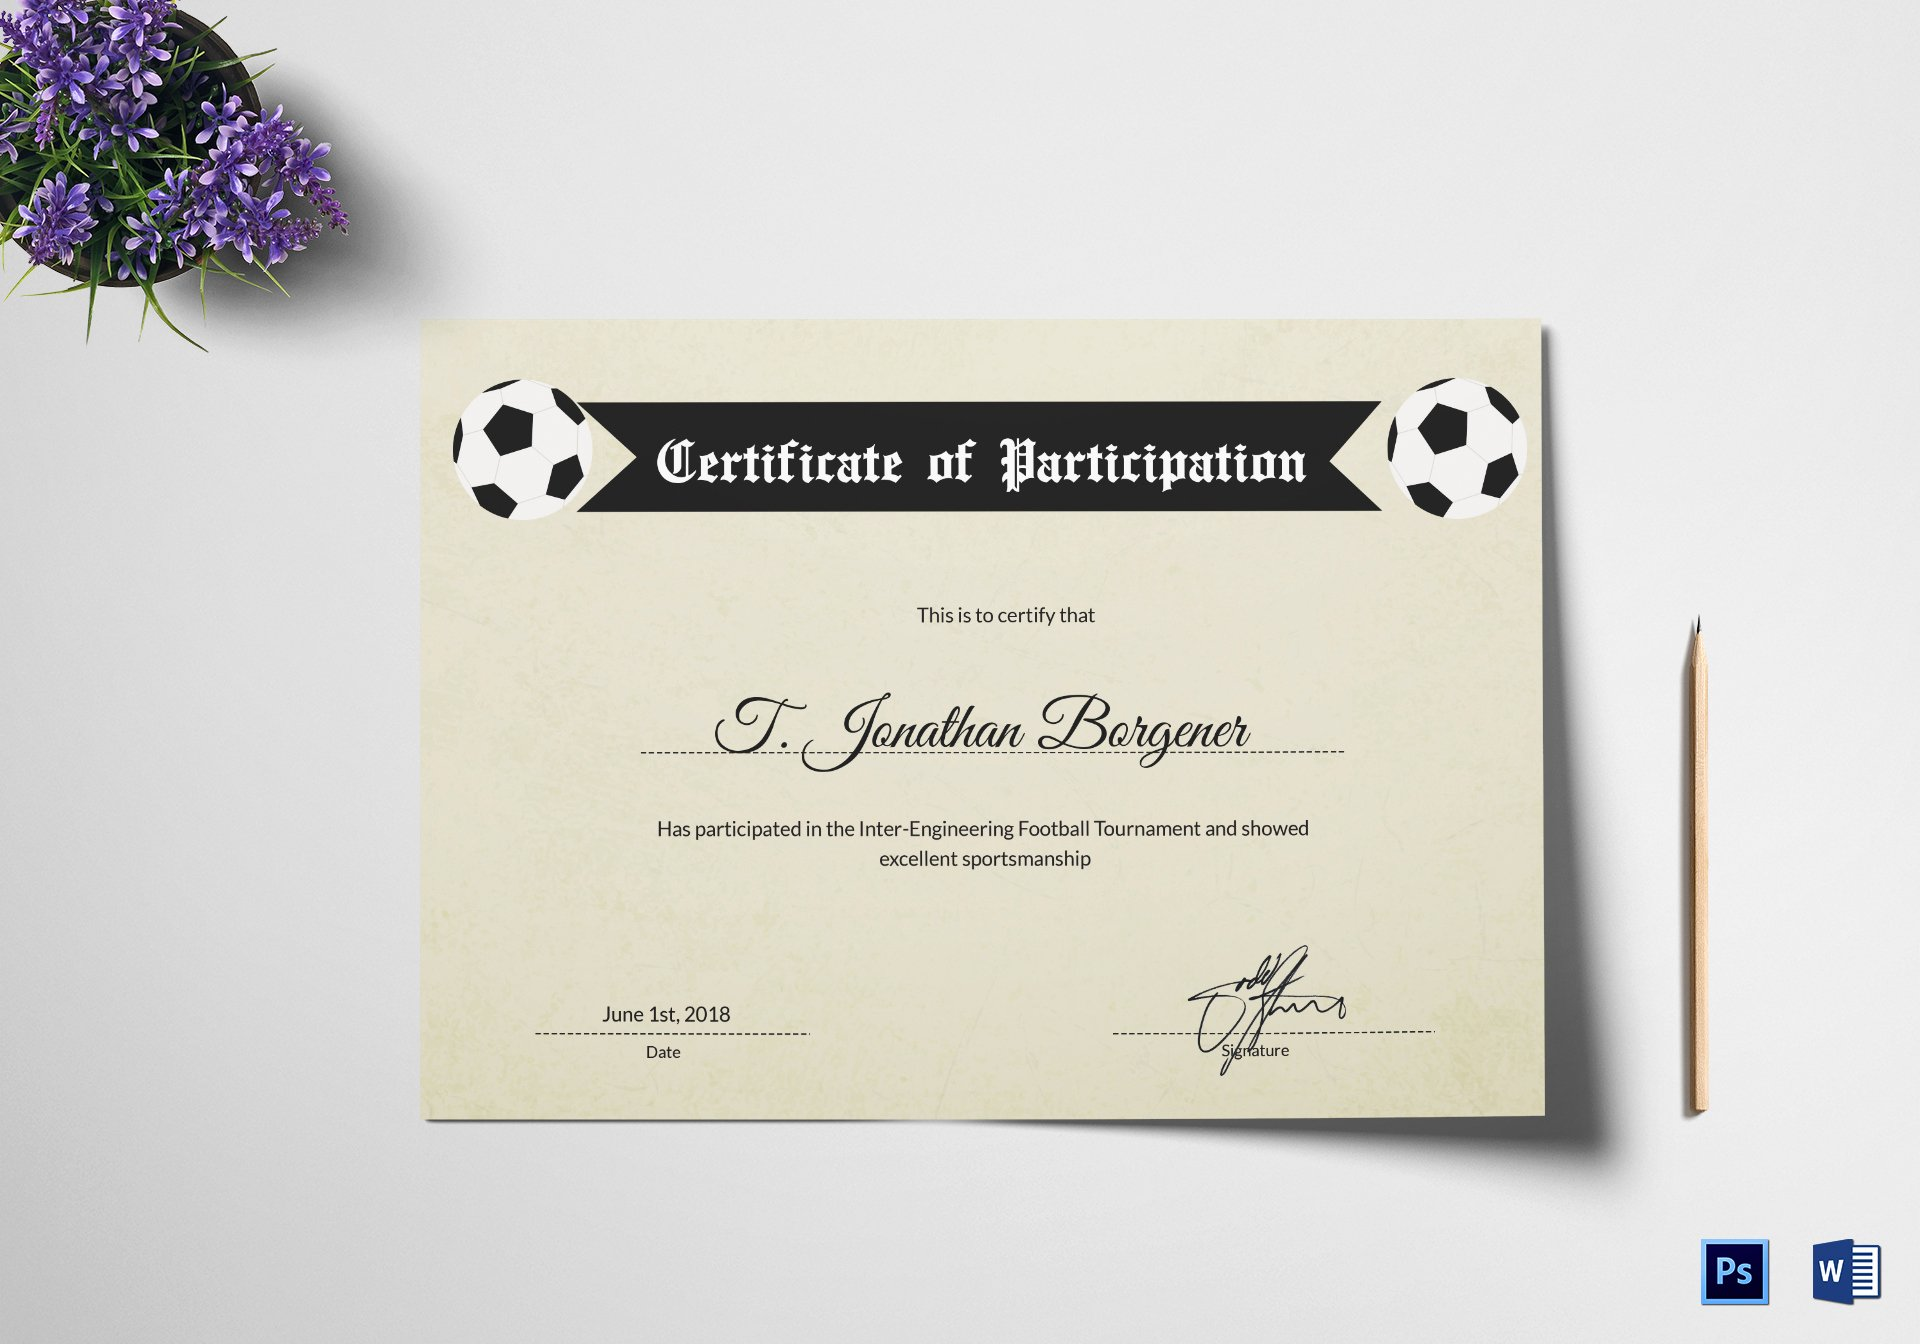 Sports Certificate Templates for Word Inspirational Sports Day Football Certificate Design Template In Psd Word